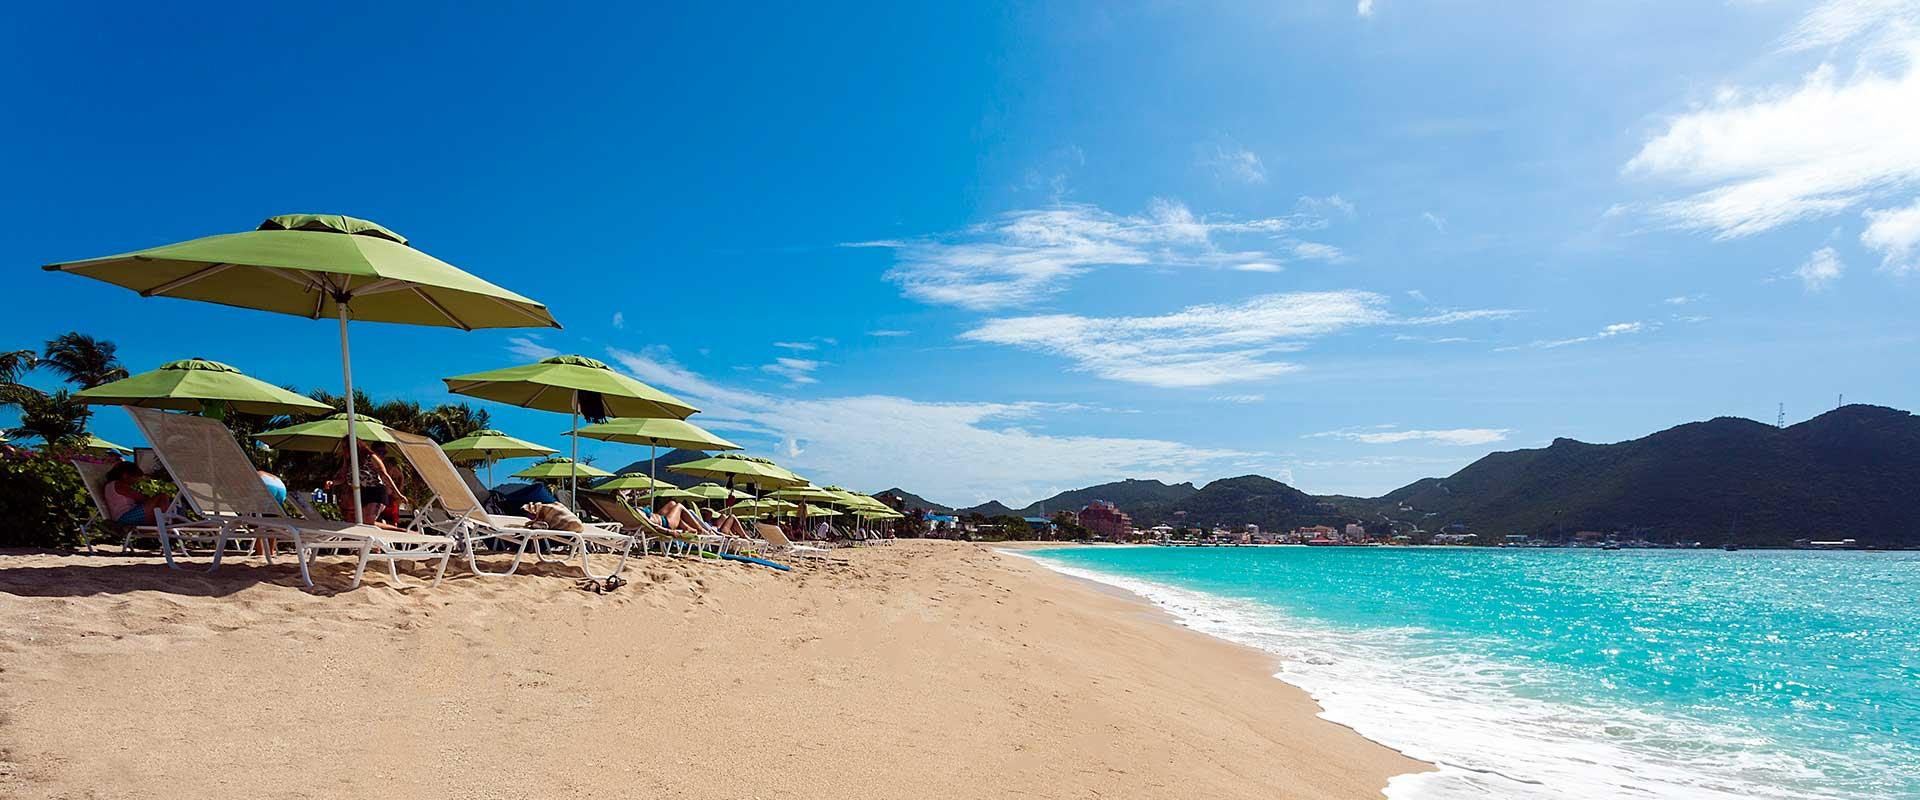 sonesta great bay beach resort, casino & spa - st. maarten - we are